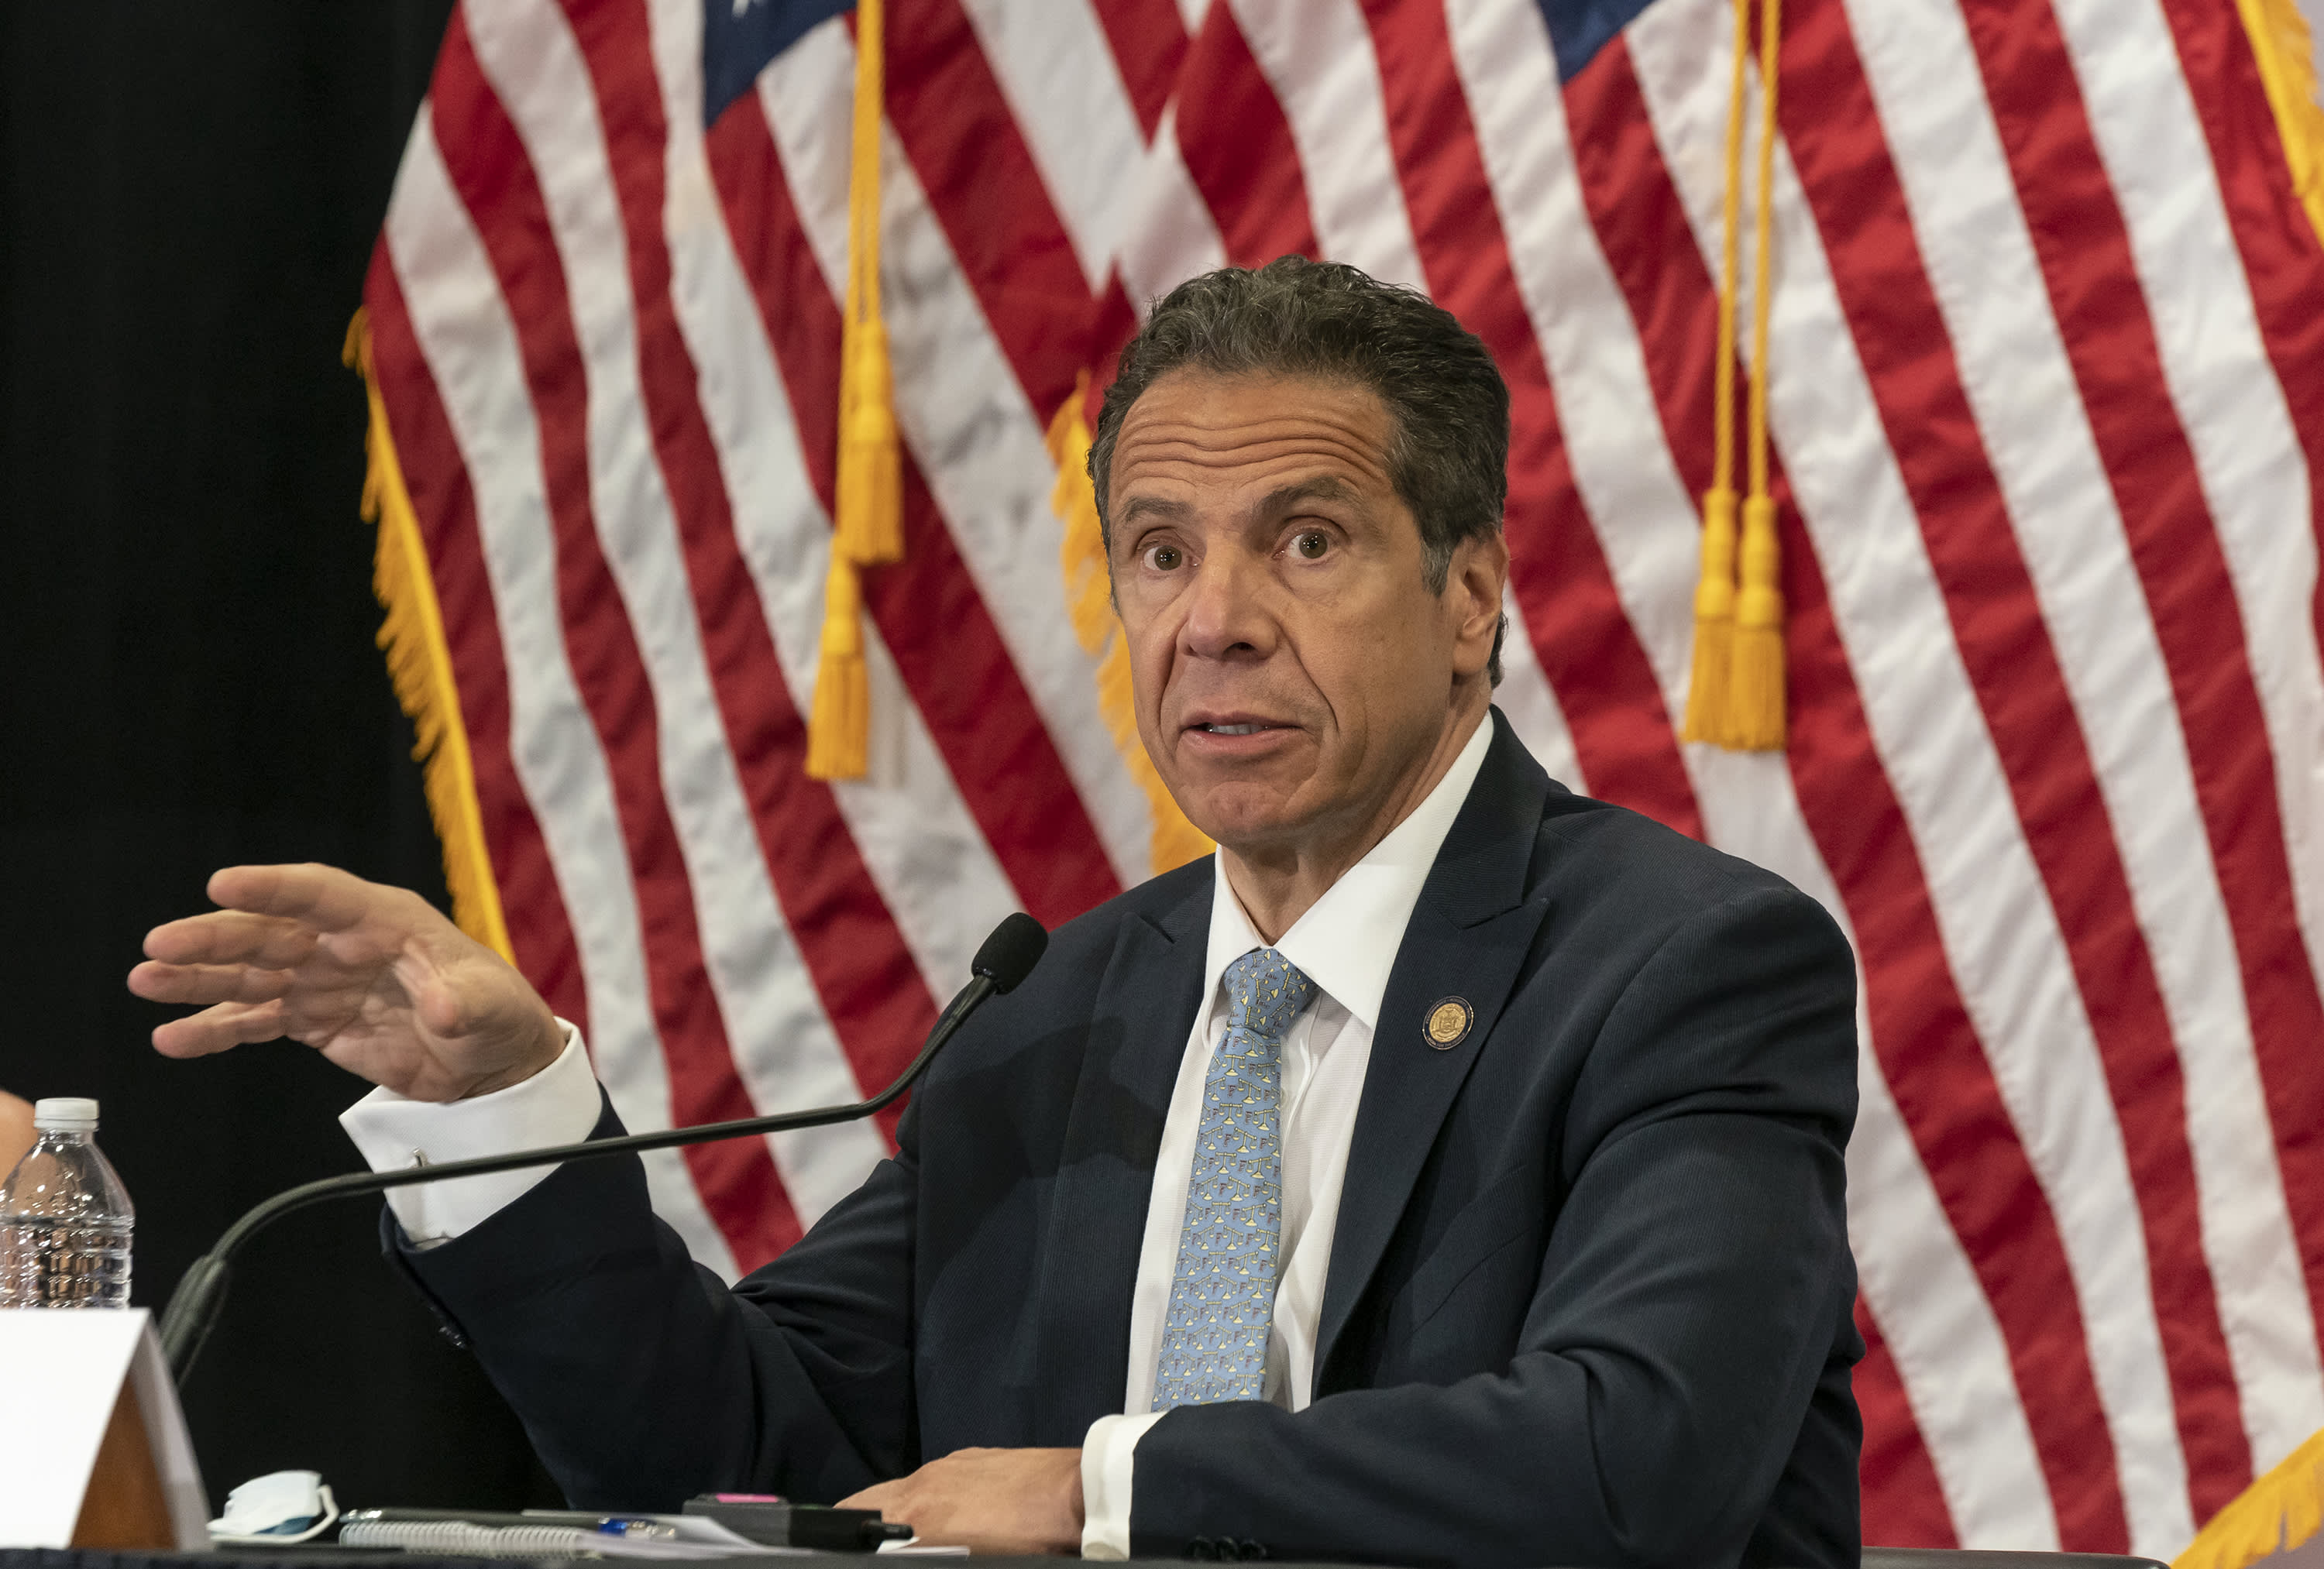 Antibody testing shows coronavirus is still spreading in low-income, minority communities in NYC, Gov. Cuomo says